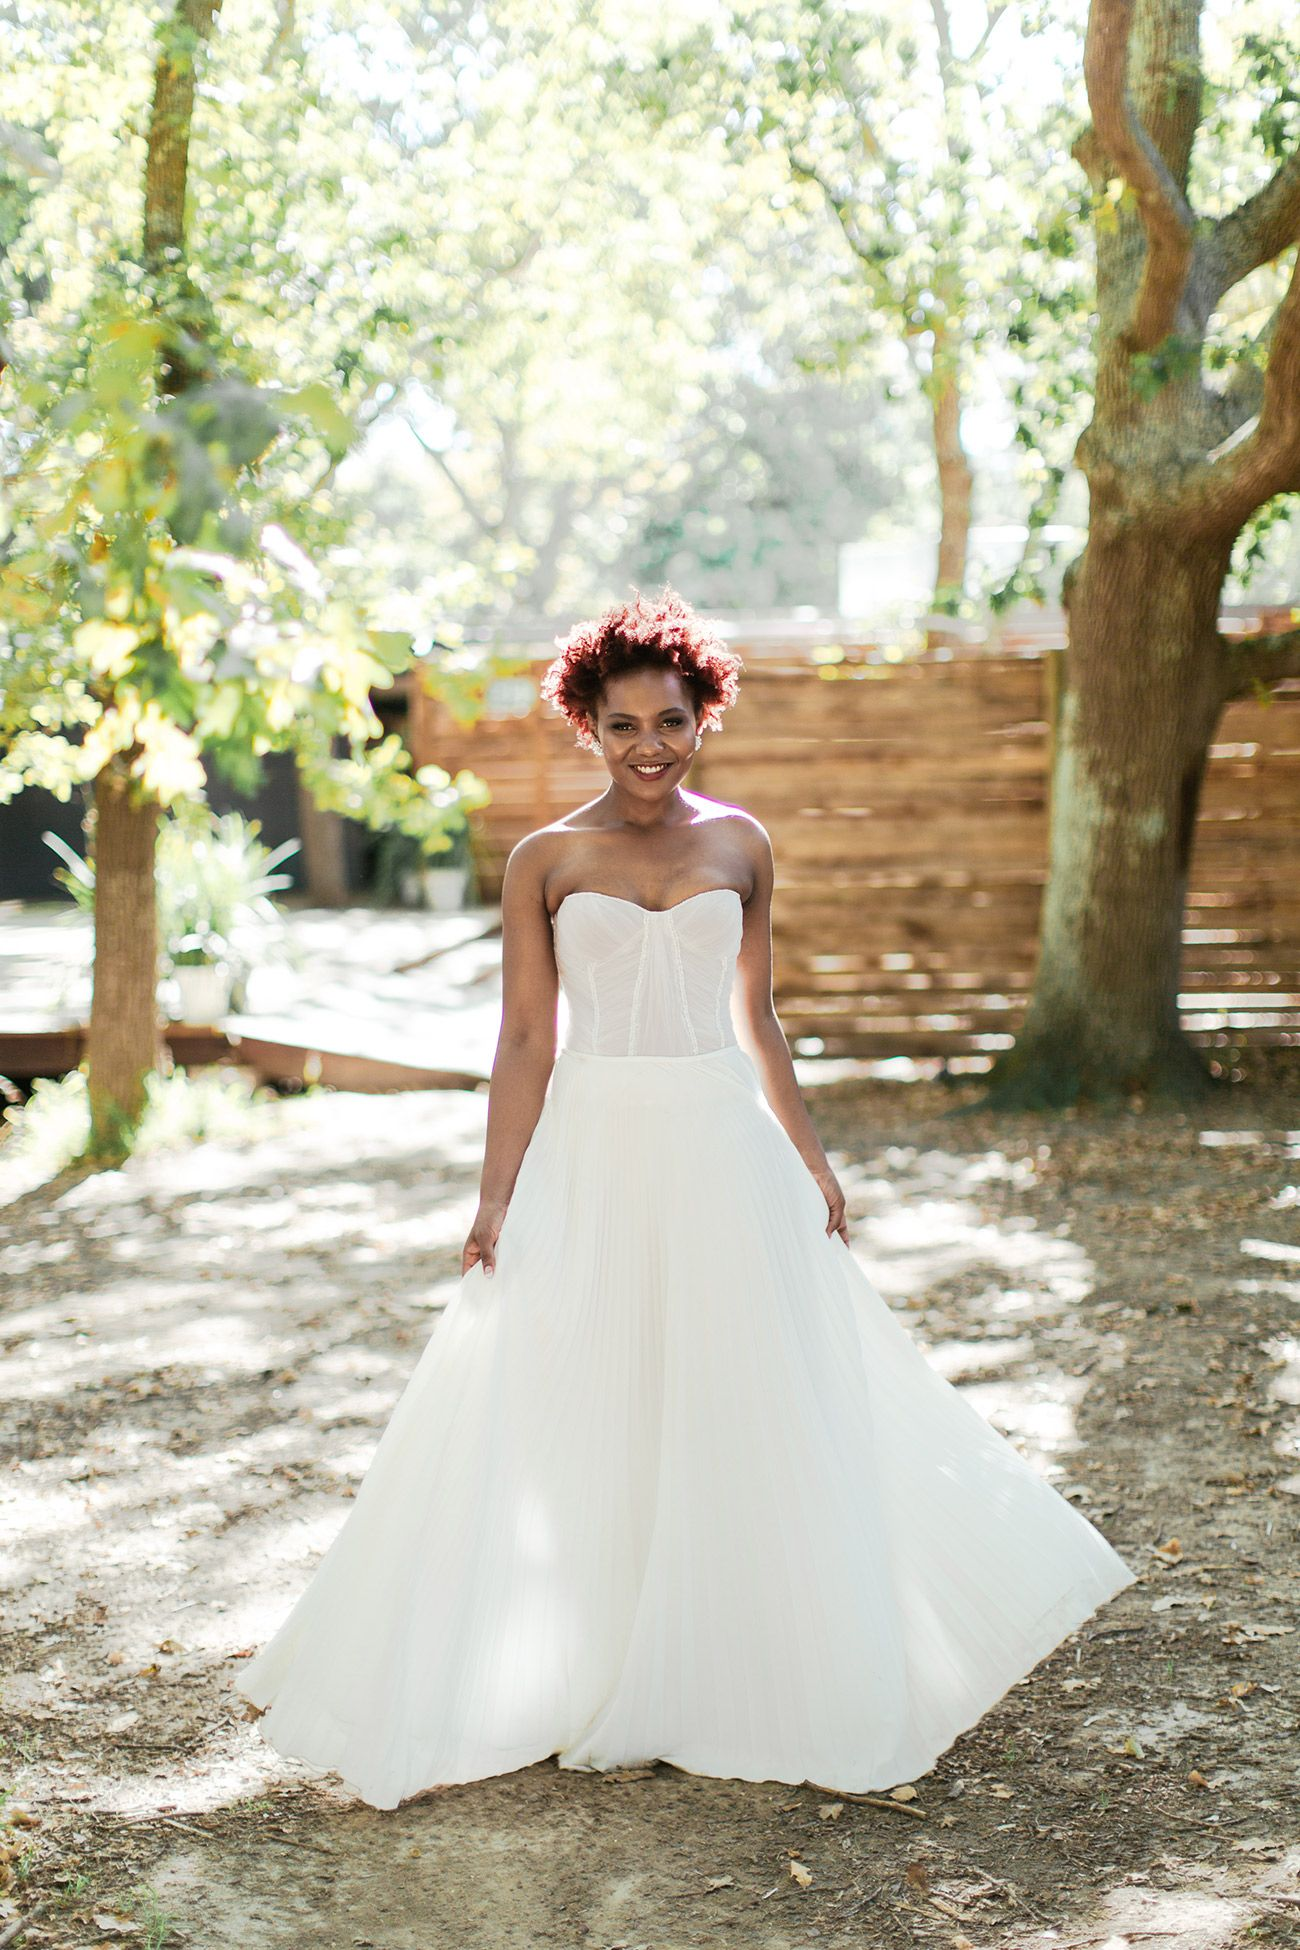 Wedding dress for your body  How To Choose The Best Wedding Dress For Your Body  The Most